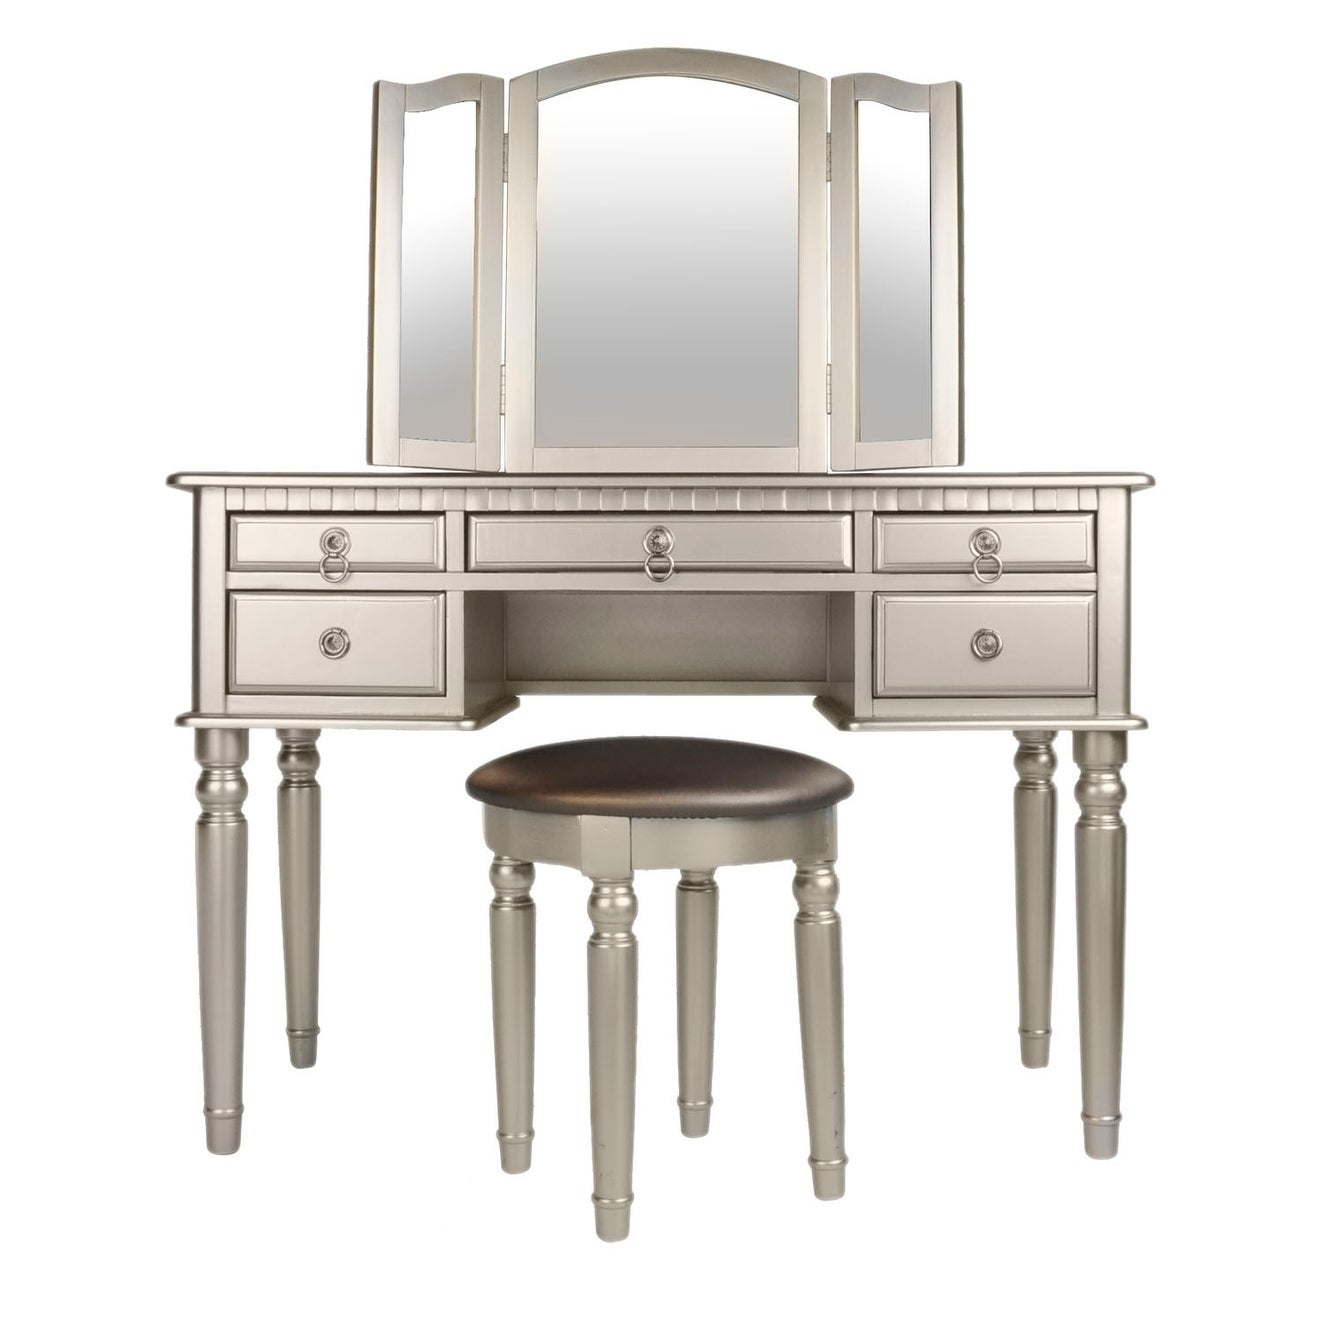 Bobkona St. Croix Rubberwood Veneer 3-fold Mirror Vanity Table with Stool Set with 5 Drawers - Free Shipping Today - Overstock - 21752228  sc 1 st  Overstock.com & Bobkona St. Croix Rubberwood Veneer 3-fold Mirror Vanity Table with ...